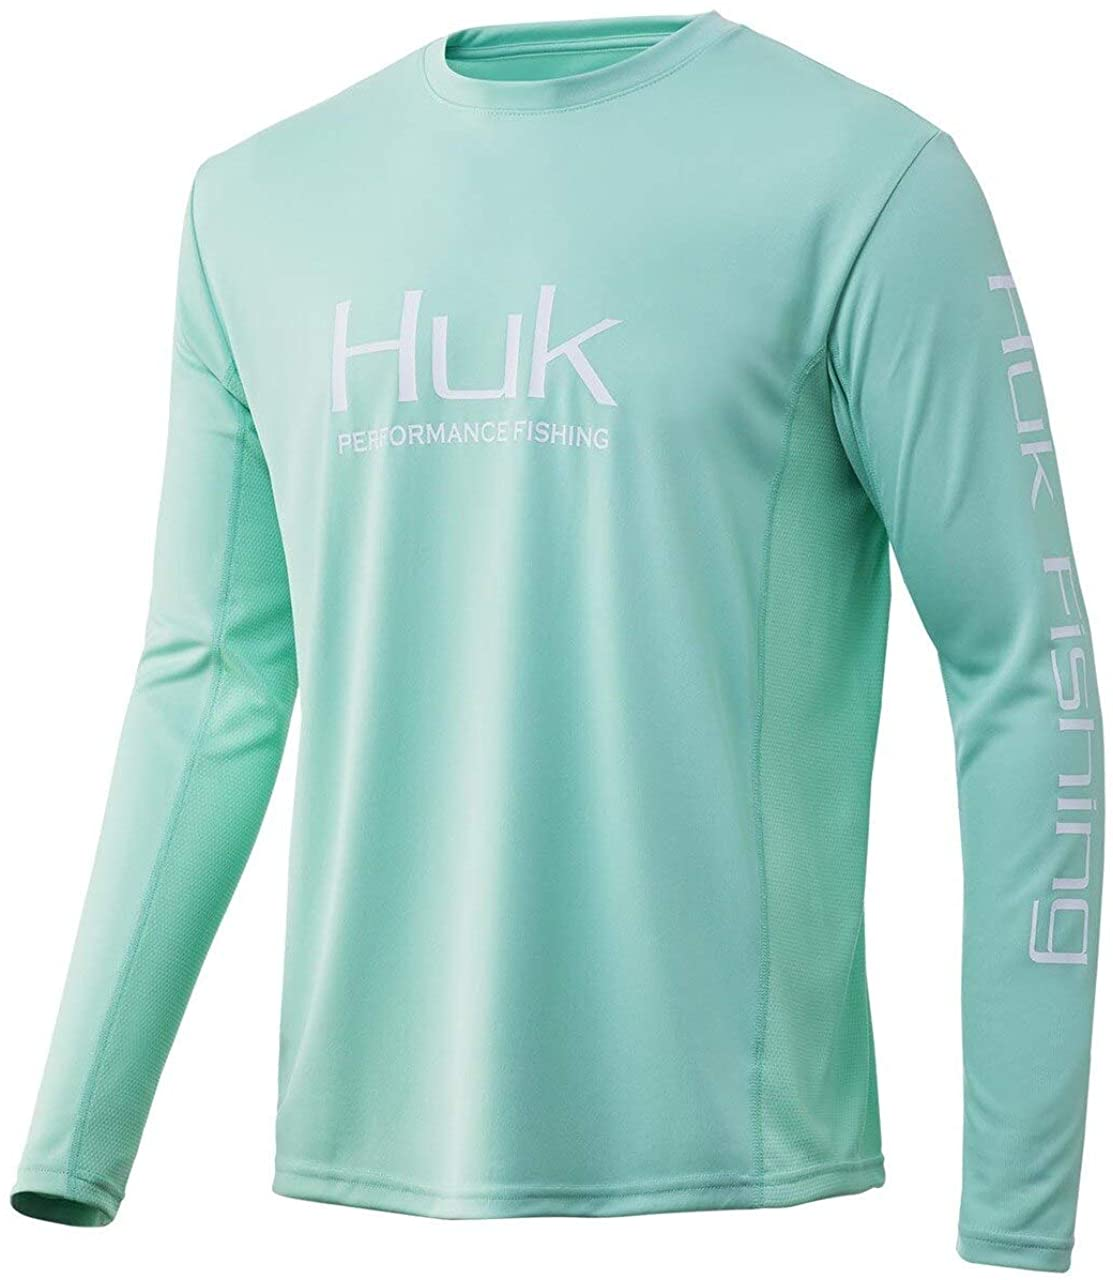 Men's Huk Icon X Long Sleeve Shirt in Lichen from the front